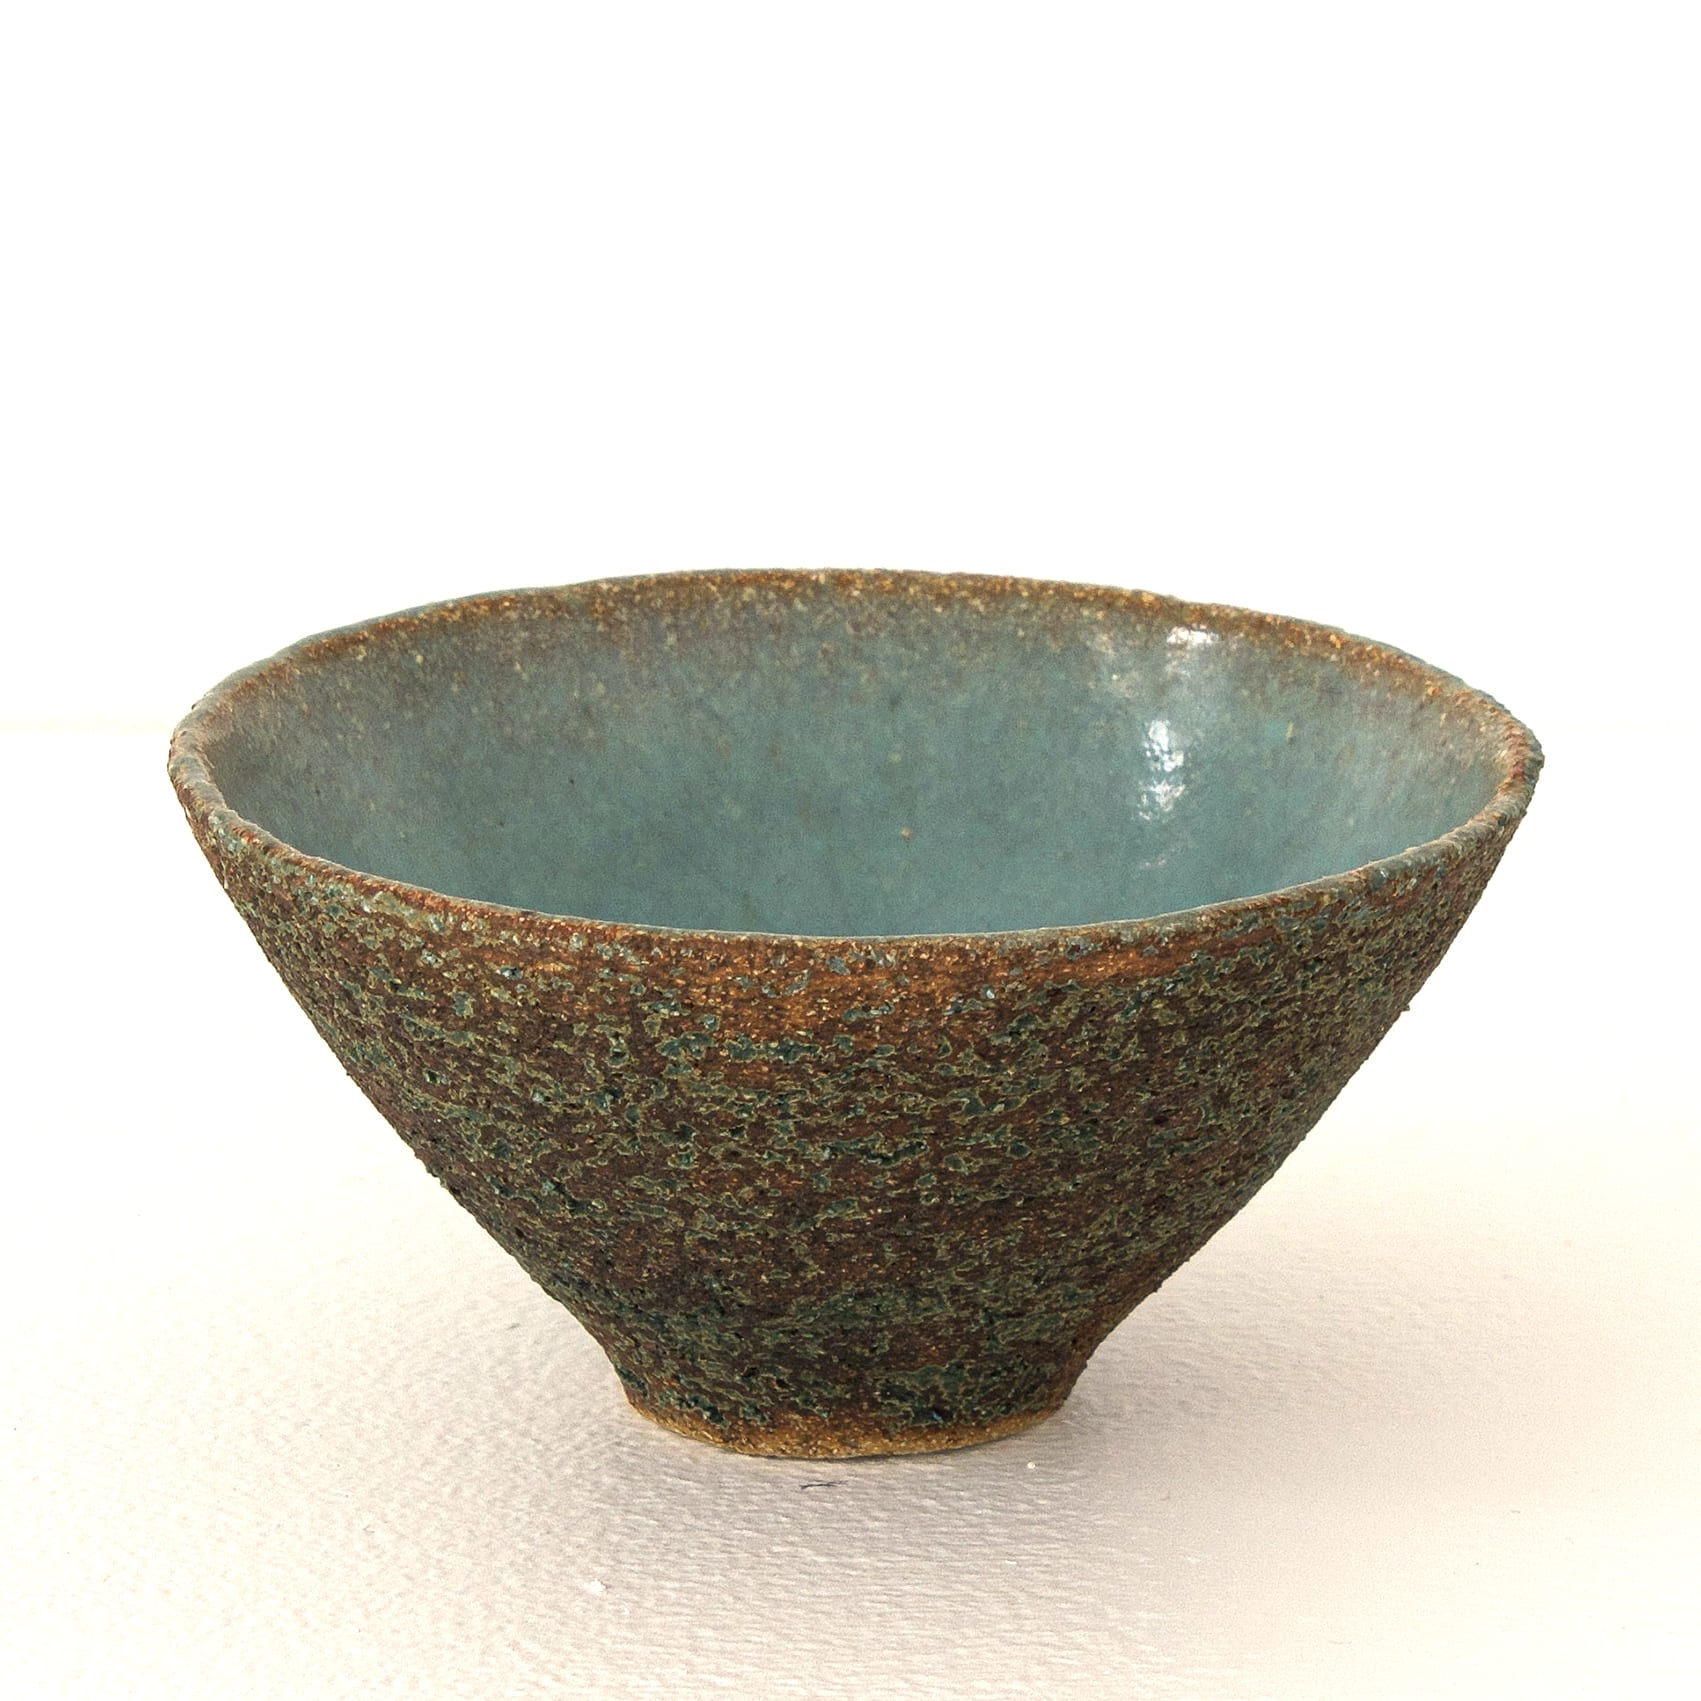 """<span class=""""link fancybox-details-link""""><a href=""""/artists/410-sotis-filippides/works/7703-sotis-filippides-small-bowl-2021/"""">View Detail Page</a></span><div class=""""artist""""><strong>Sotis Filippides</strong></div> <div class=""""title""""><em>Small Bowl</em>, 2021</div> <div class=""""signed_and_dated"""">impressed to the base with the artist's seal mark</div> <div class=""""medium"""">thrown stoneware</div> <div class=""""dimensions"""">h. 6 x dia. 10 cm</div><div class=""""copyright_line"""">Own Art: £5.50 x 10 Months, 0% APR</div>"""